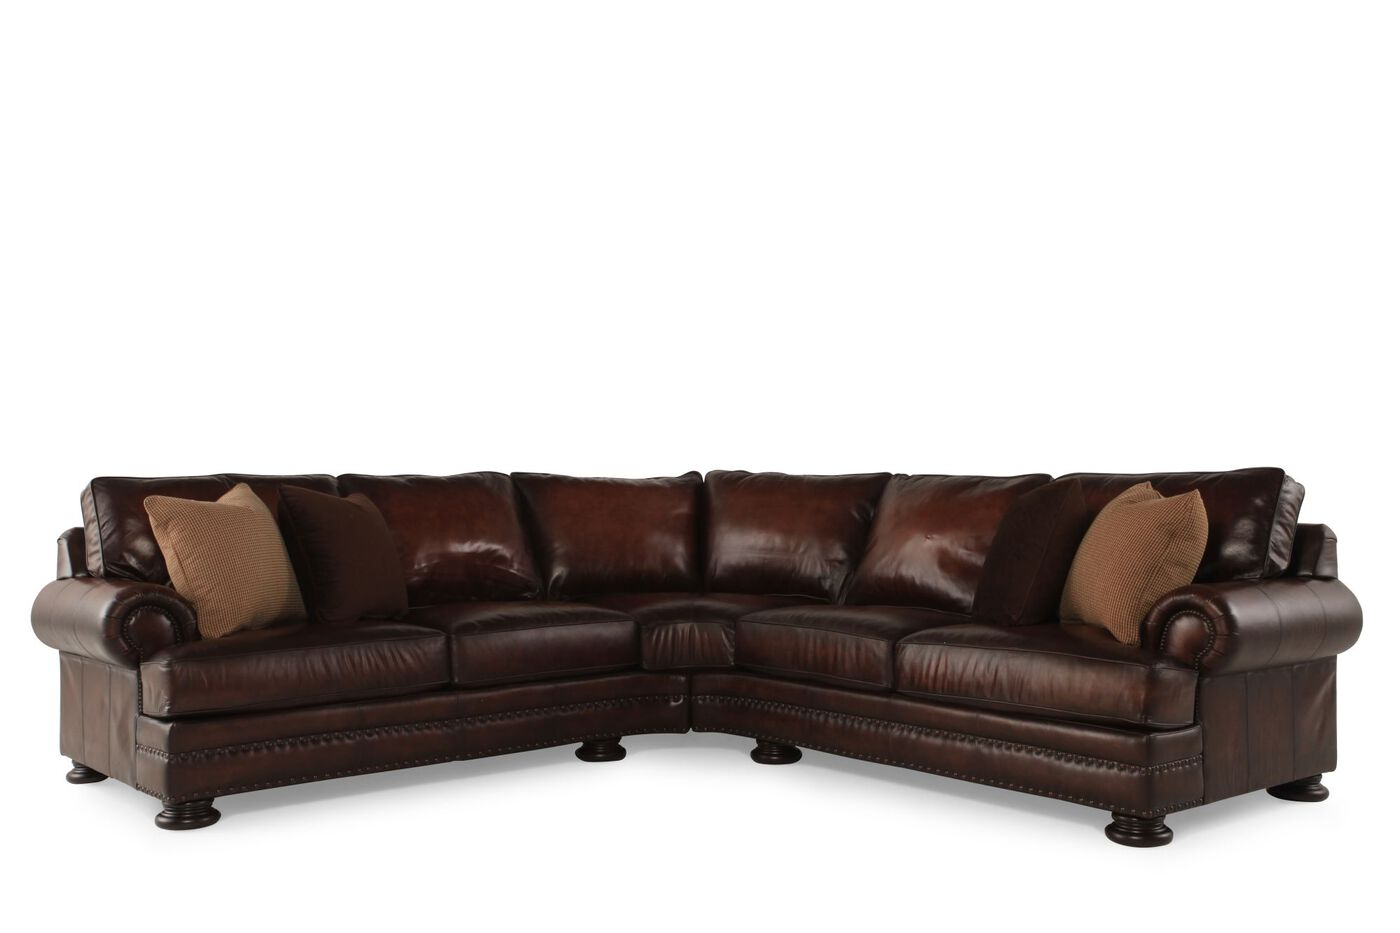 european classic nailhead accented leather 103 sectional. Black Bedroom Furniture Sets. Home Design Ideas